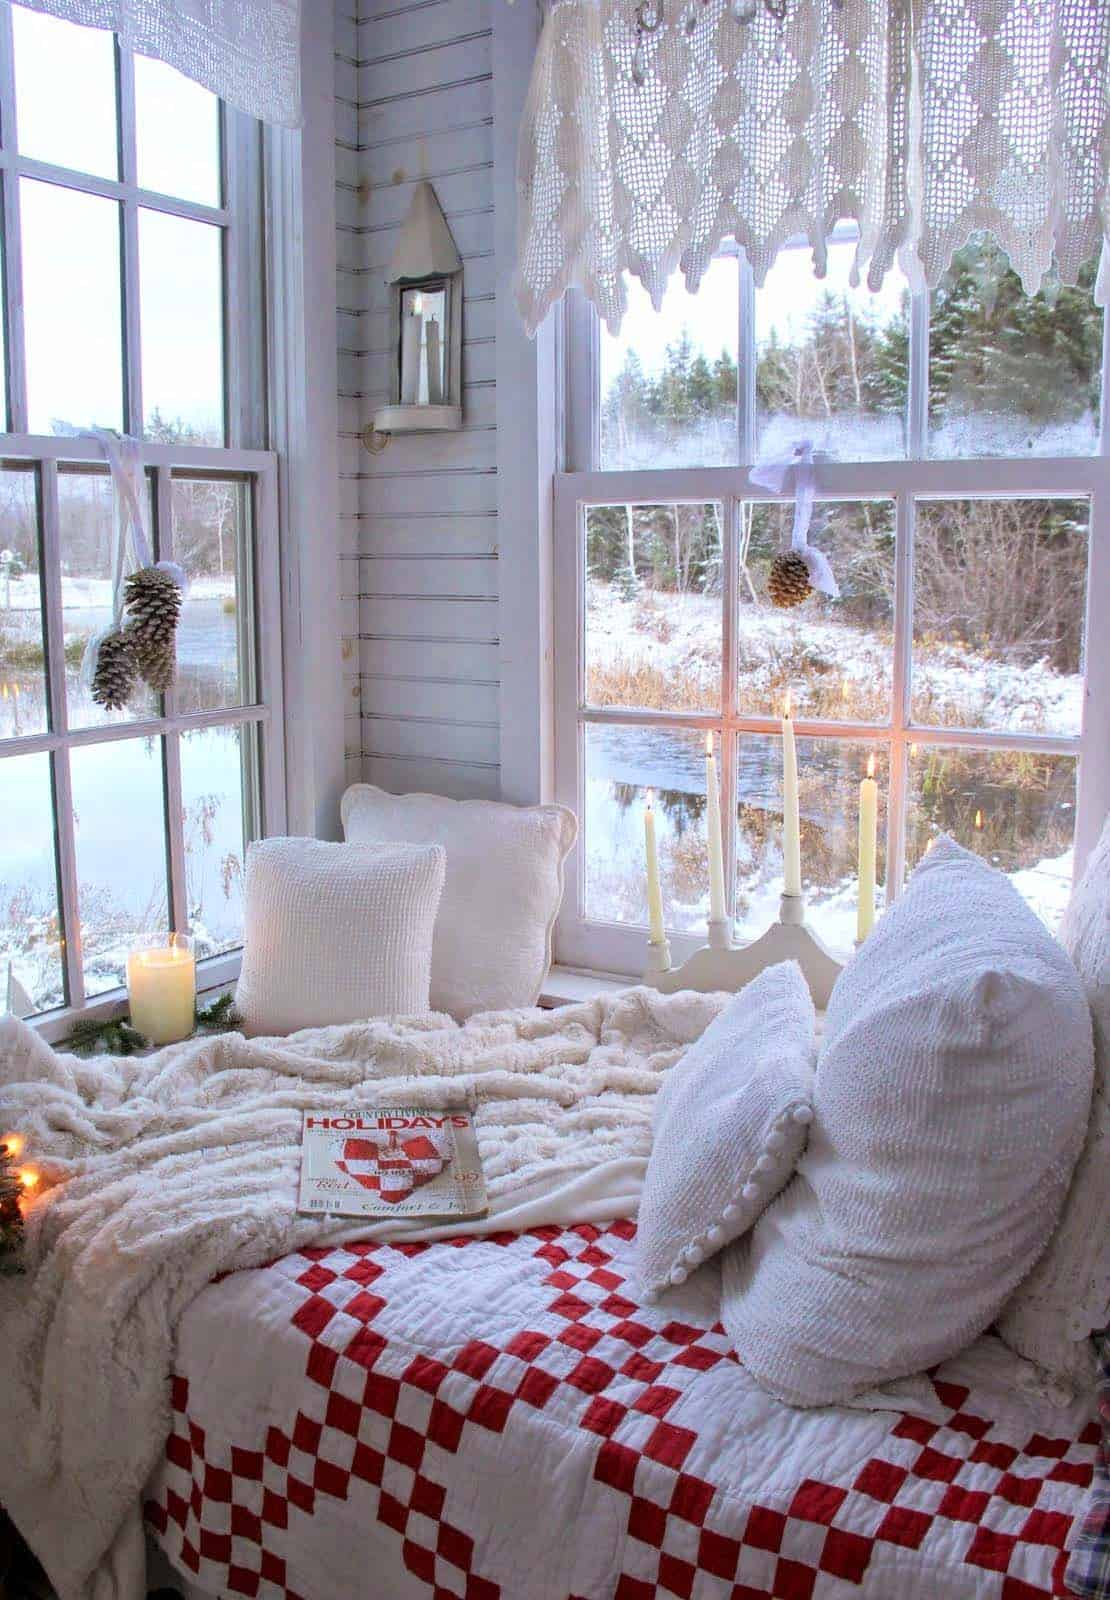 Christmas Bedroom Decorating Ideas-12-1 Kindesign